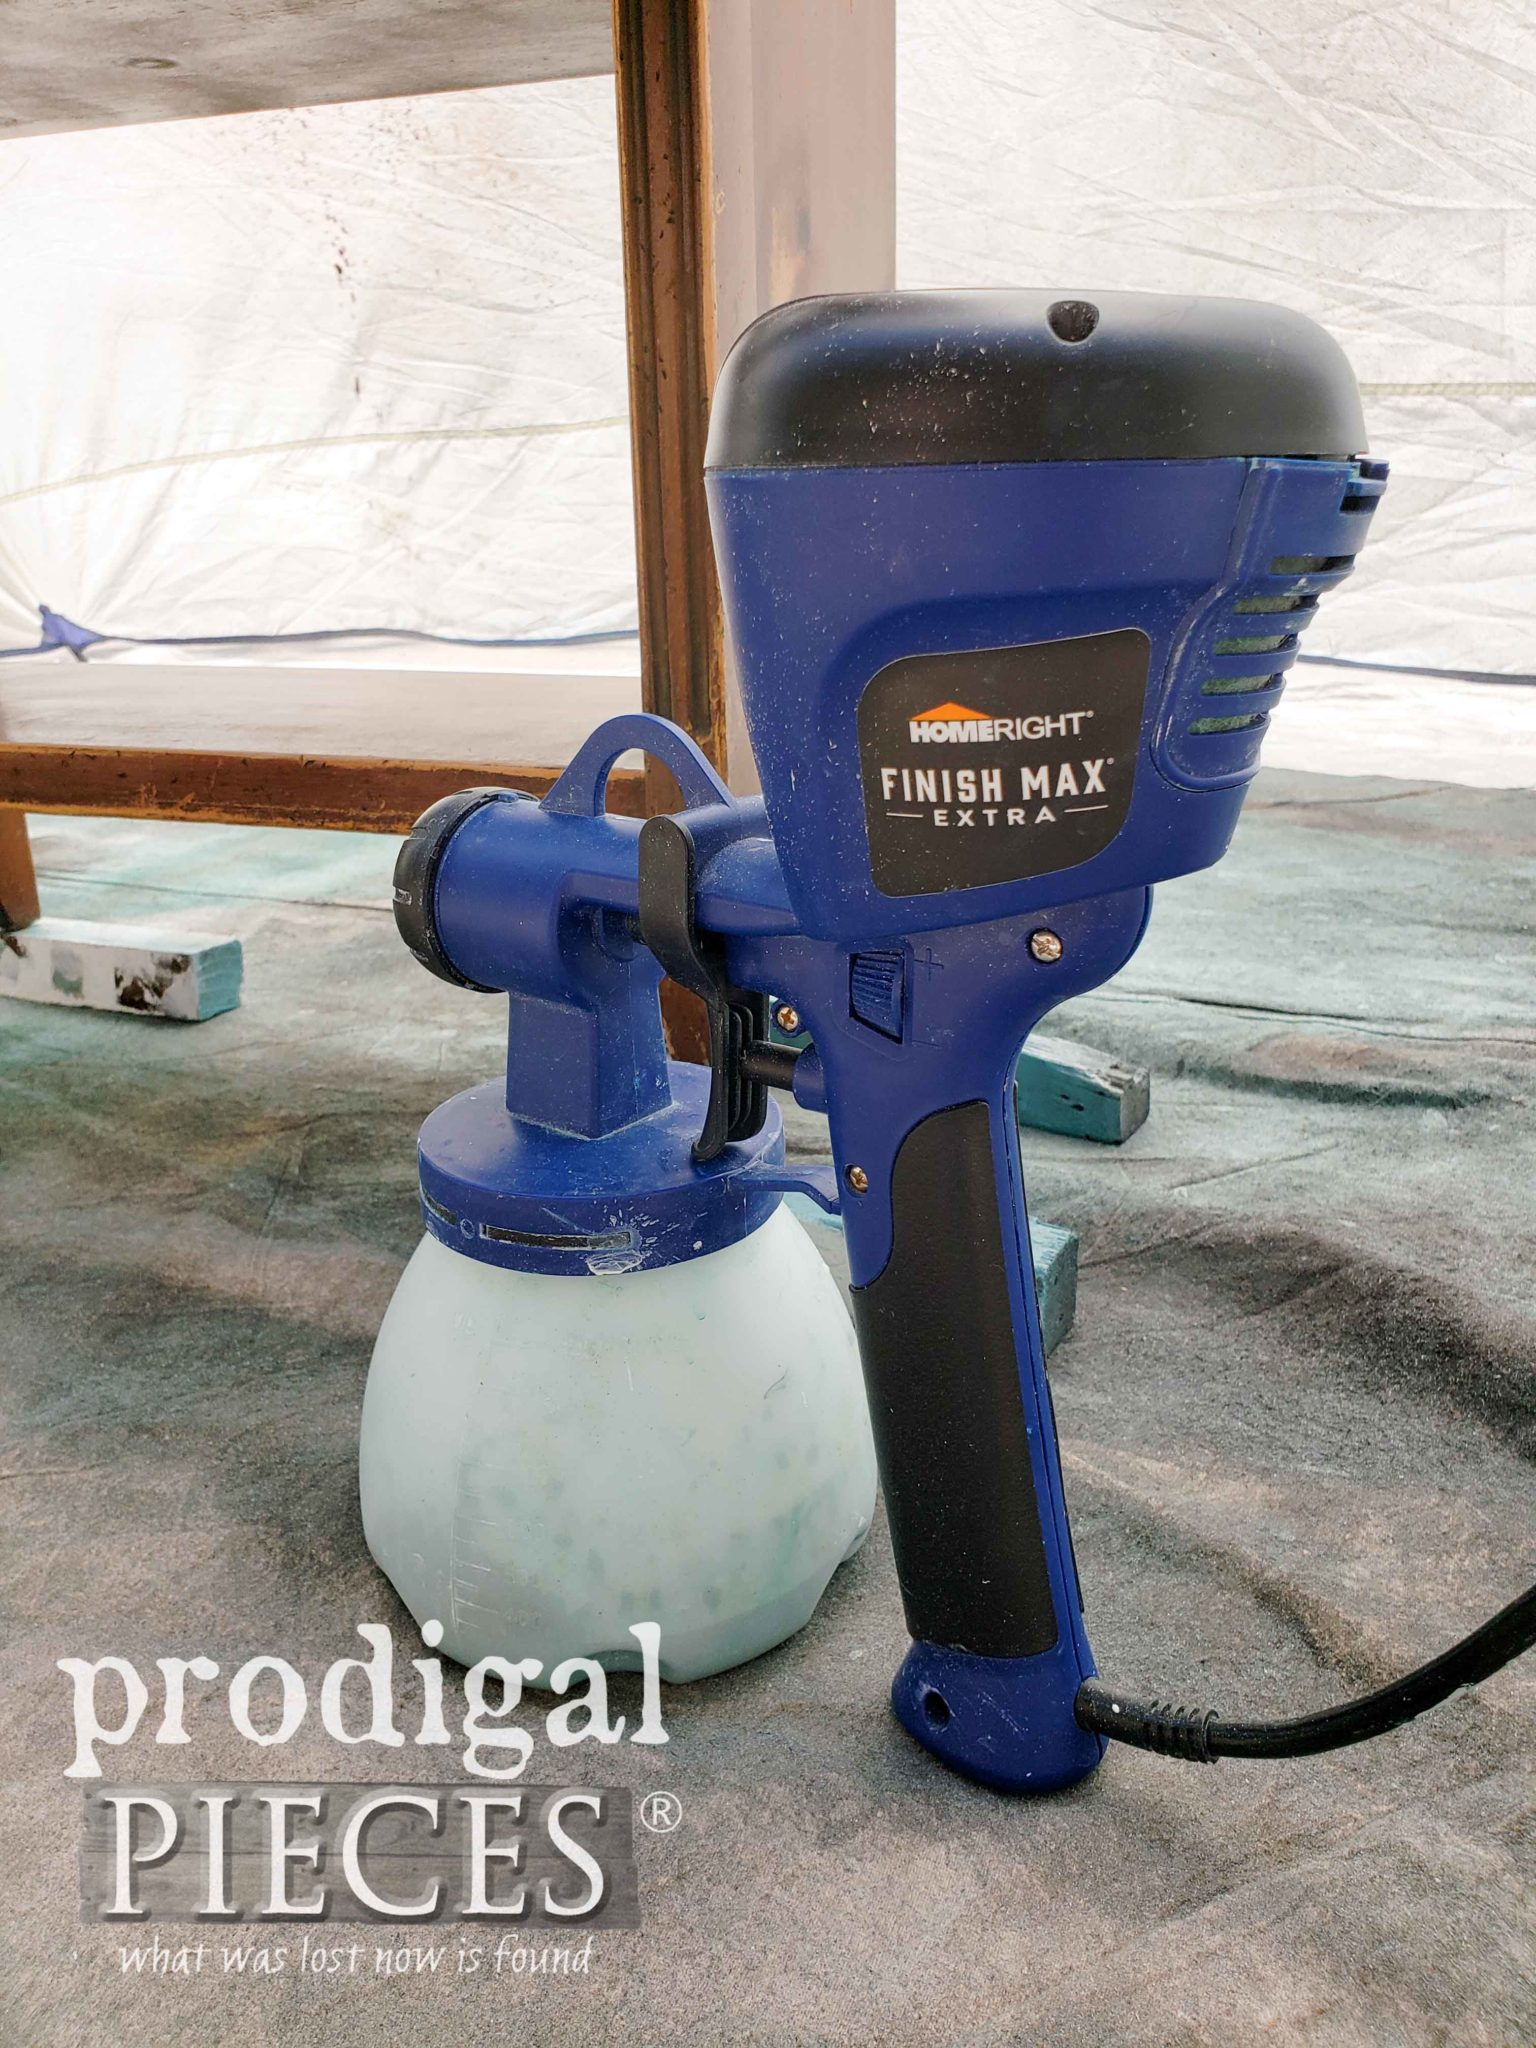 HomeRight Super Finish Max Paint Sprayer as used by Prodigal Pieces | prodigalpieces.com